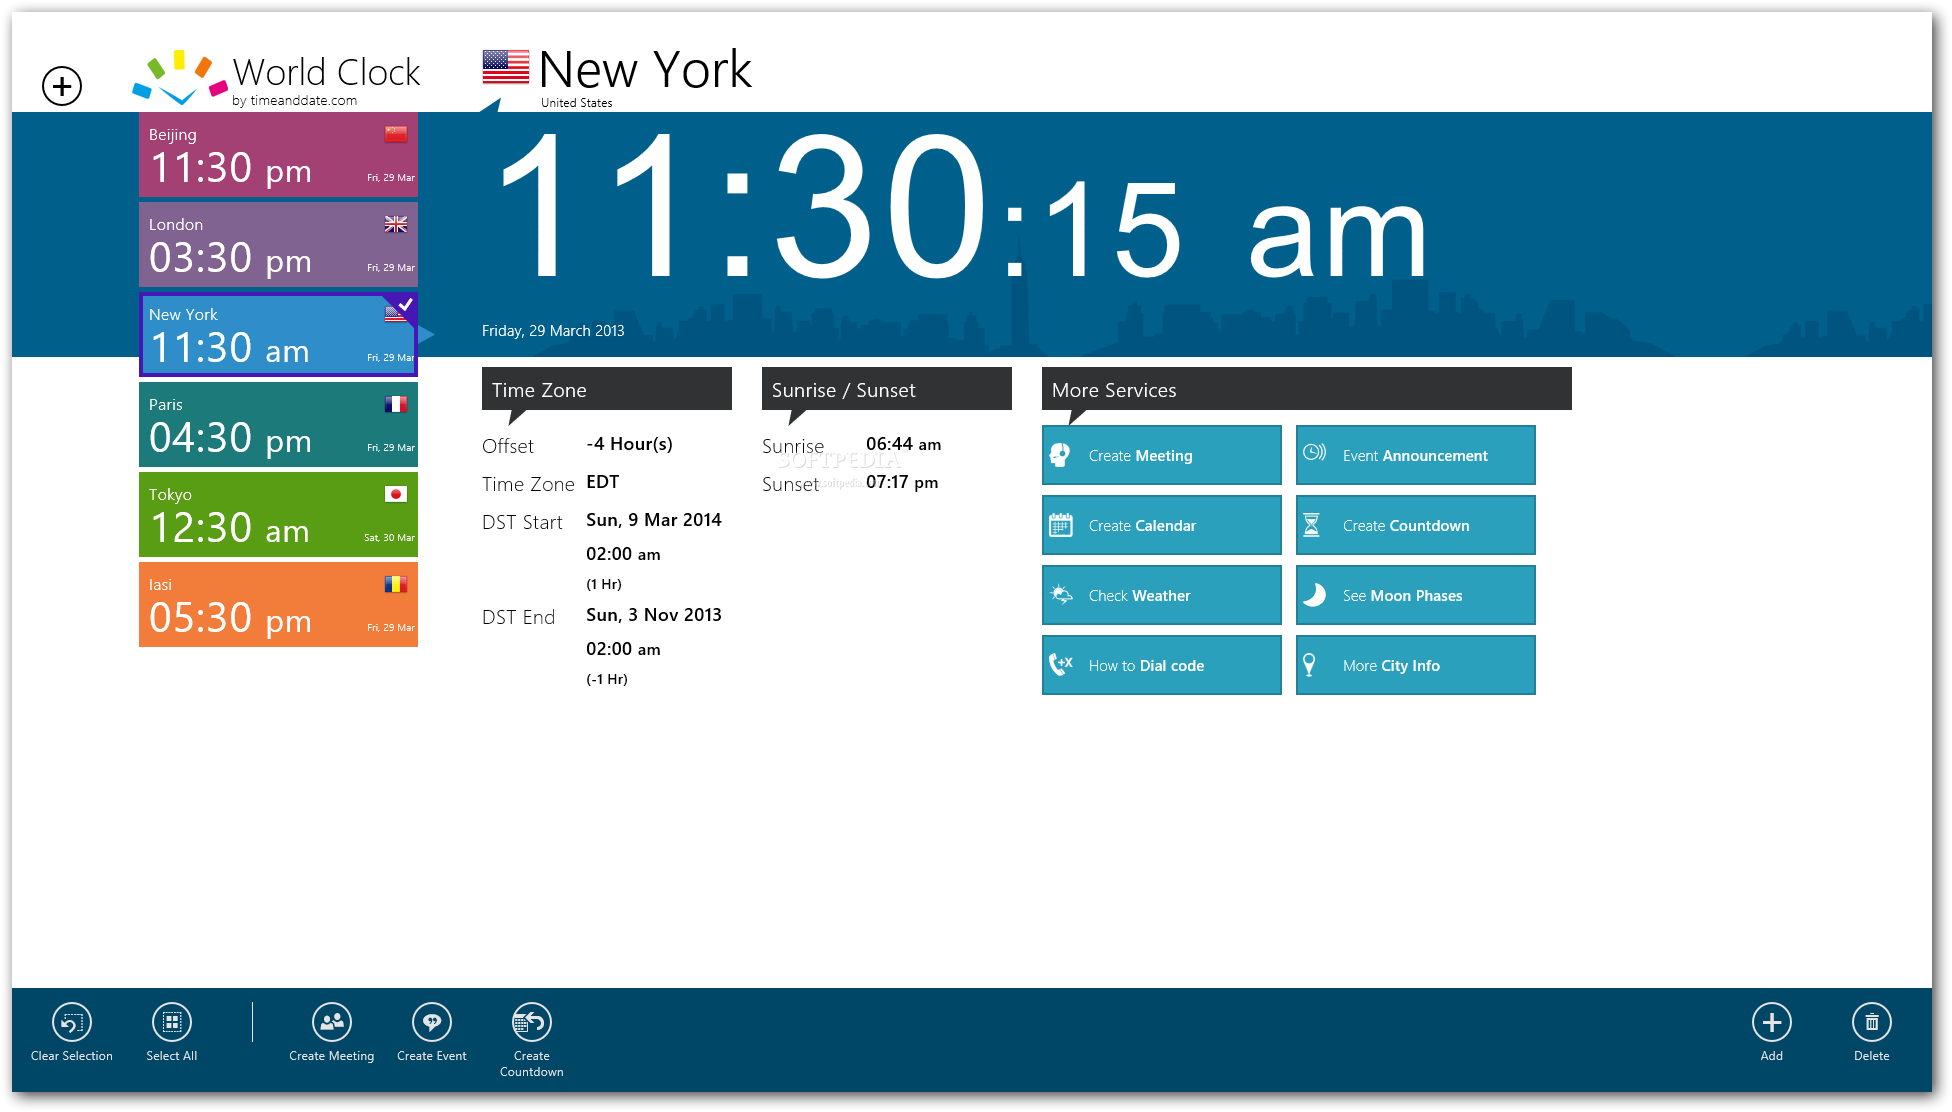 download world clock time zones for windows 10  8 1 2 0 11 45